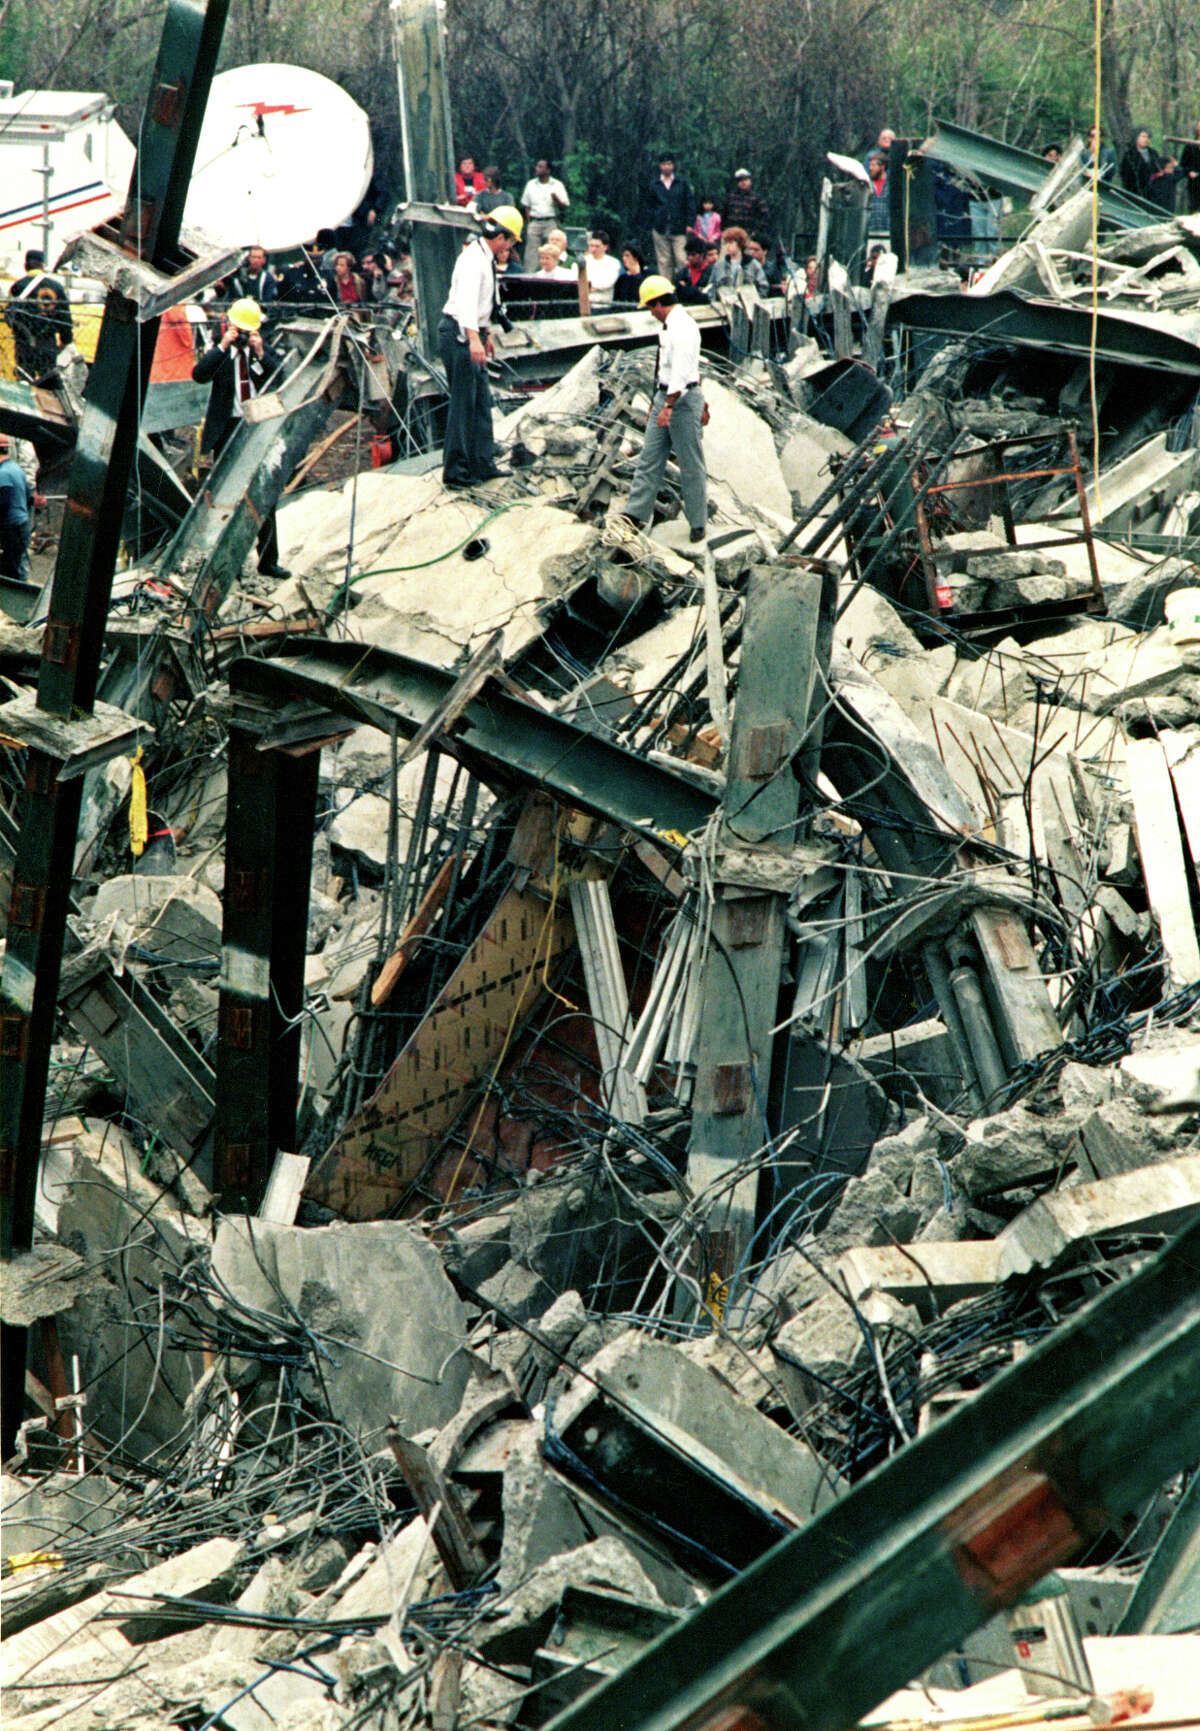 File photograph of the L'Ambiance Plaze collapse, in Bridgeport, Conn. The collapse, on April 23rd, 1987, killed 28 construction workers.